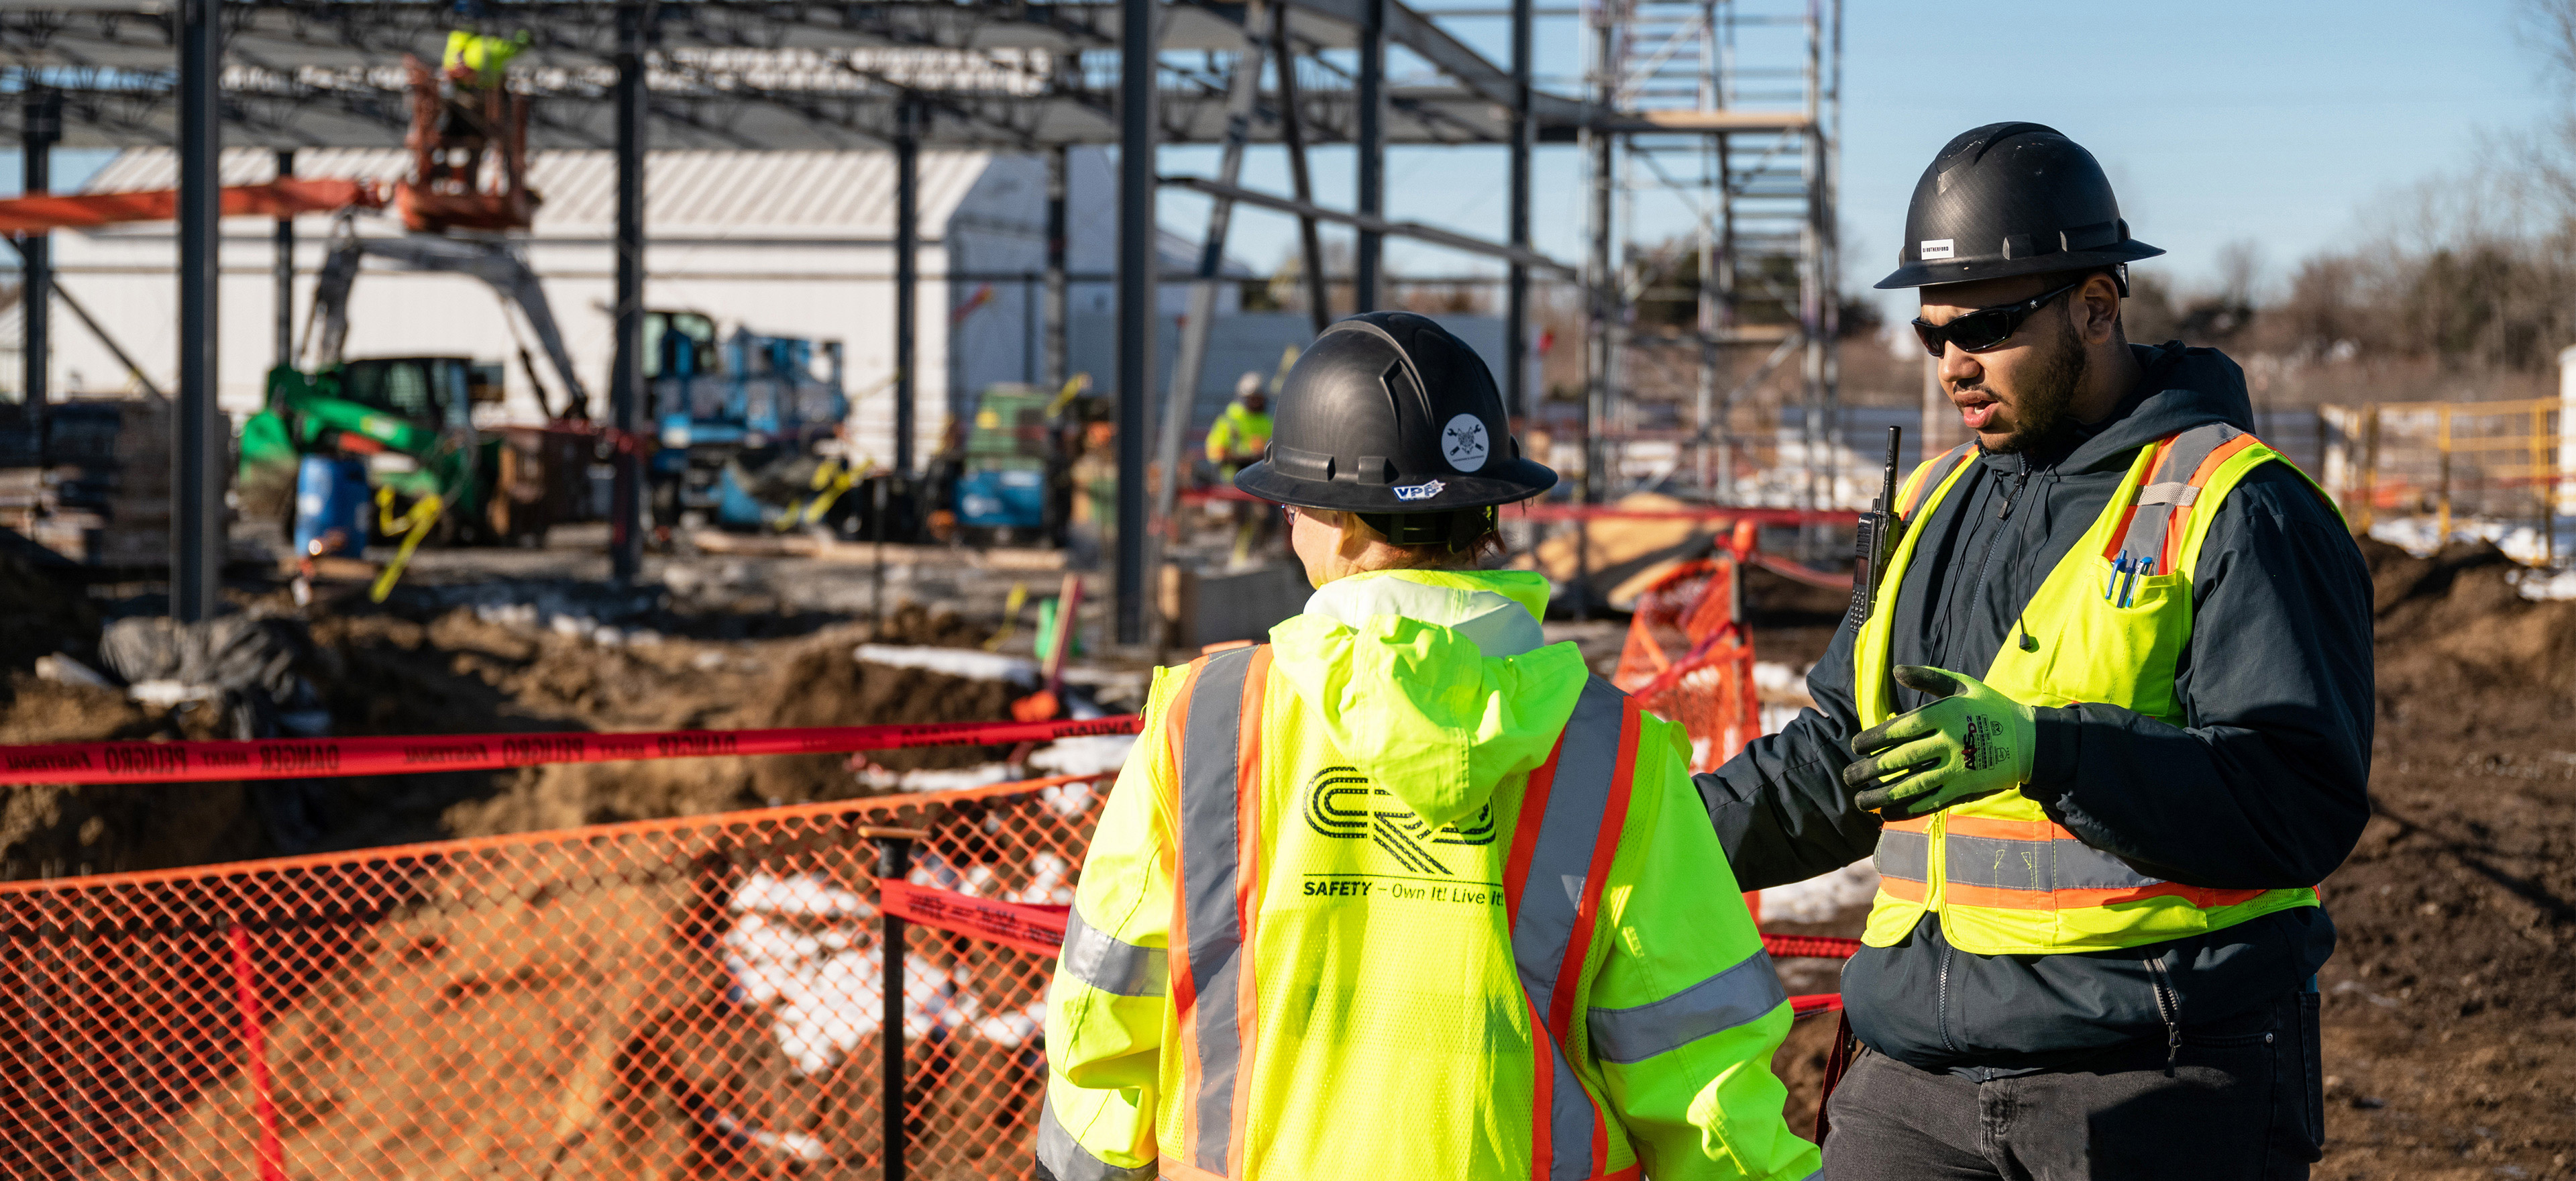 two CRB construction employees talking on the job site